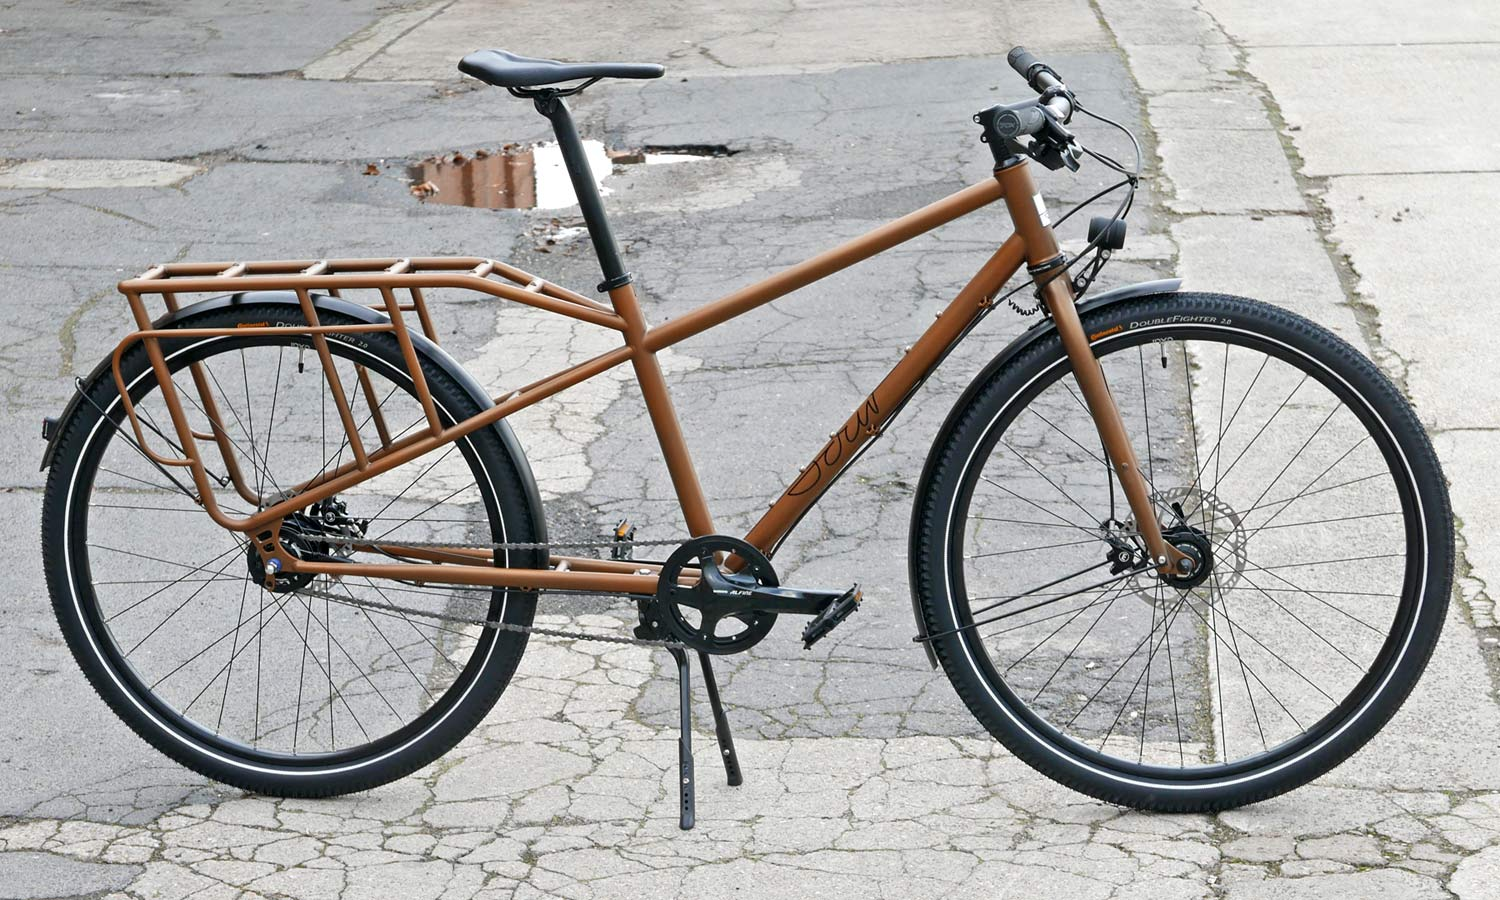 Sour Bicycles solid, affordable production steel off-road bikes Pick Up truck